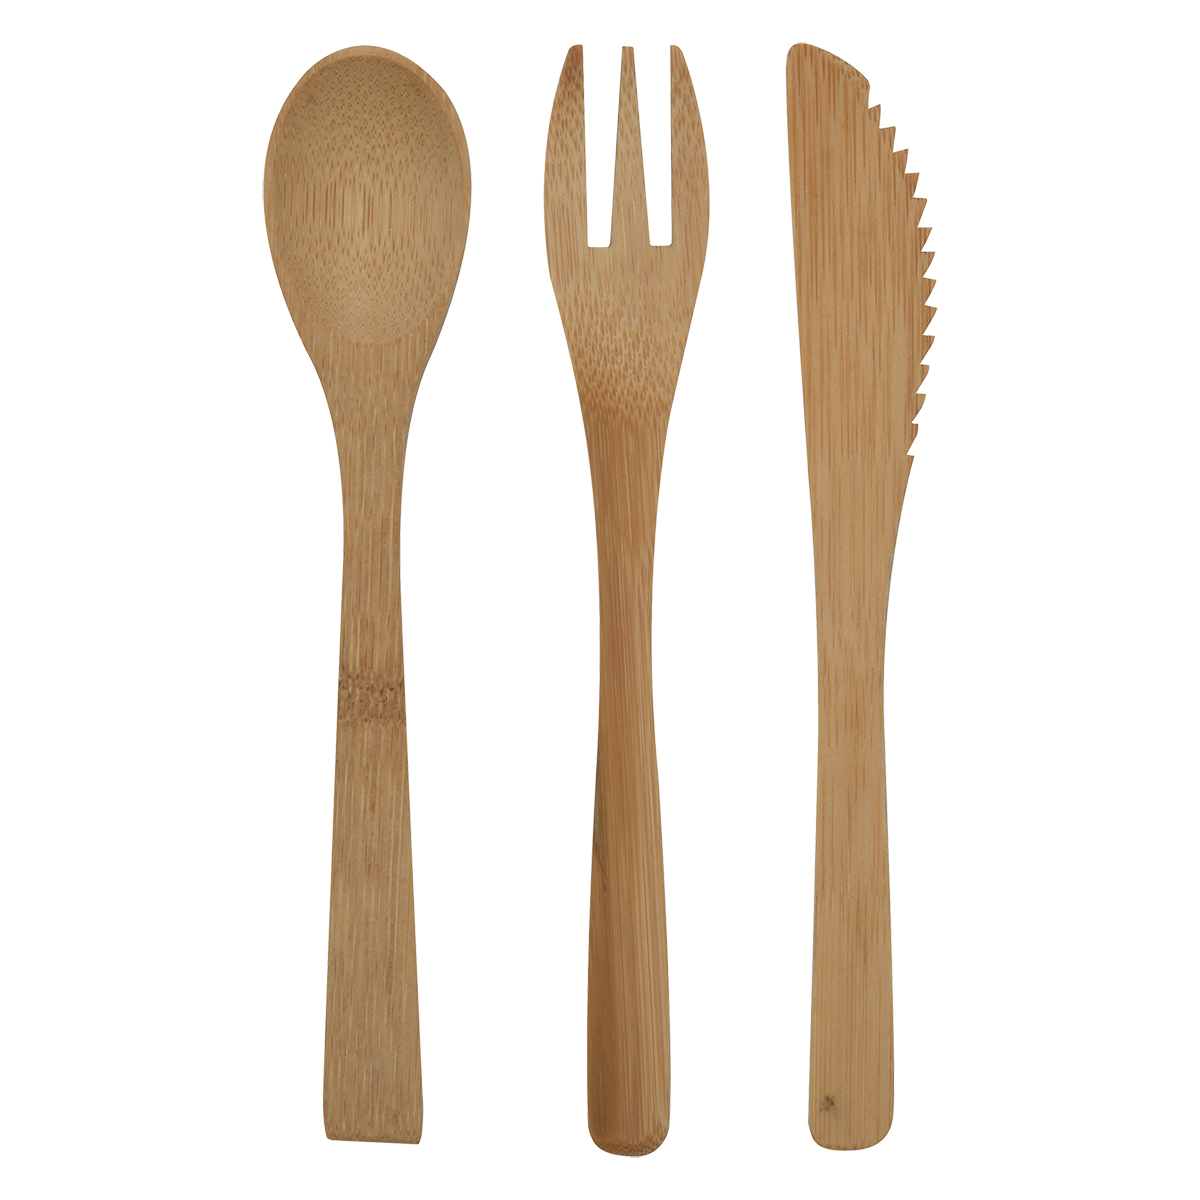 3-Piece Bamboo Utensil Set In Travel Pouch